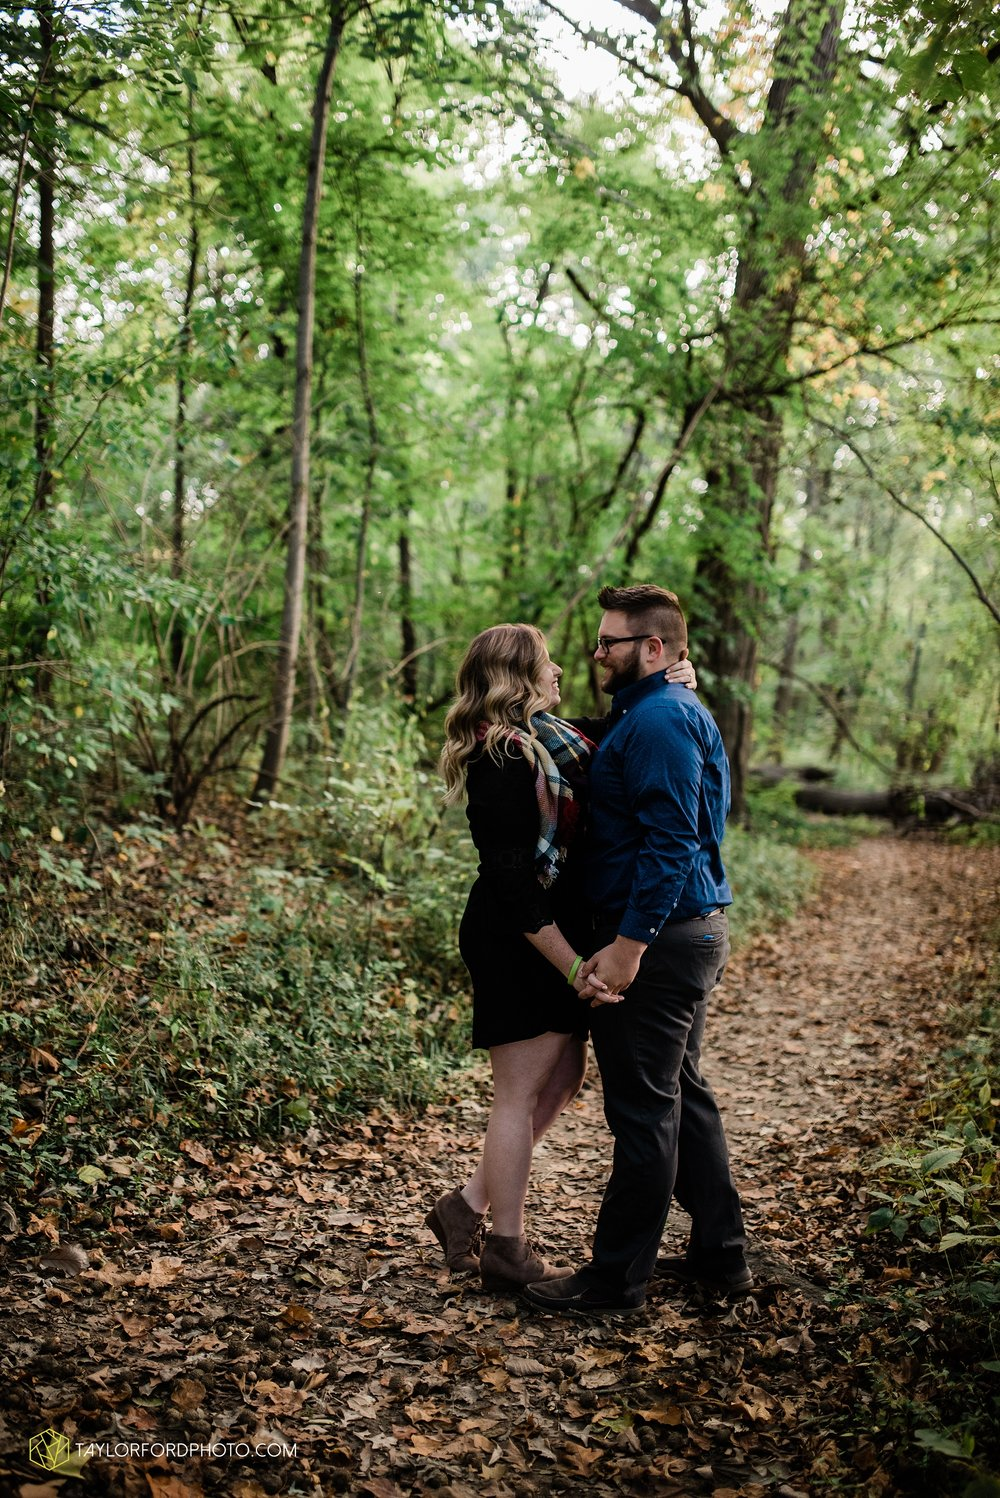 downtown-fort-wayne-engagement-foster-park-bravas-wunderkamer-fox-island-quarry-photographer-taylor-ford-photography_0967.jpg